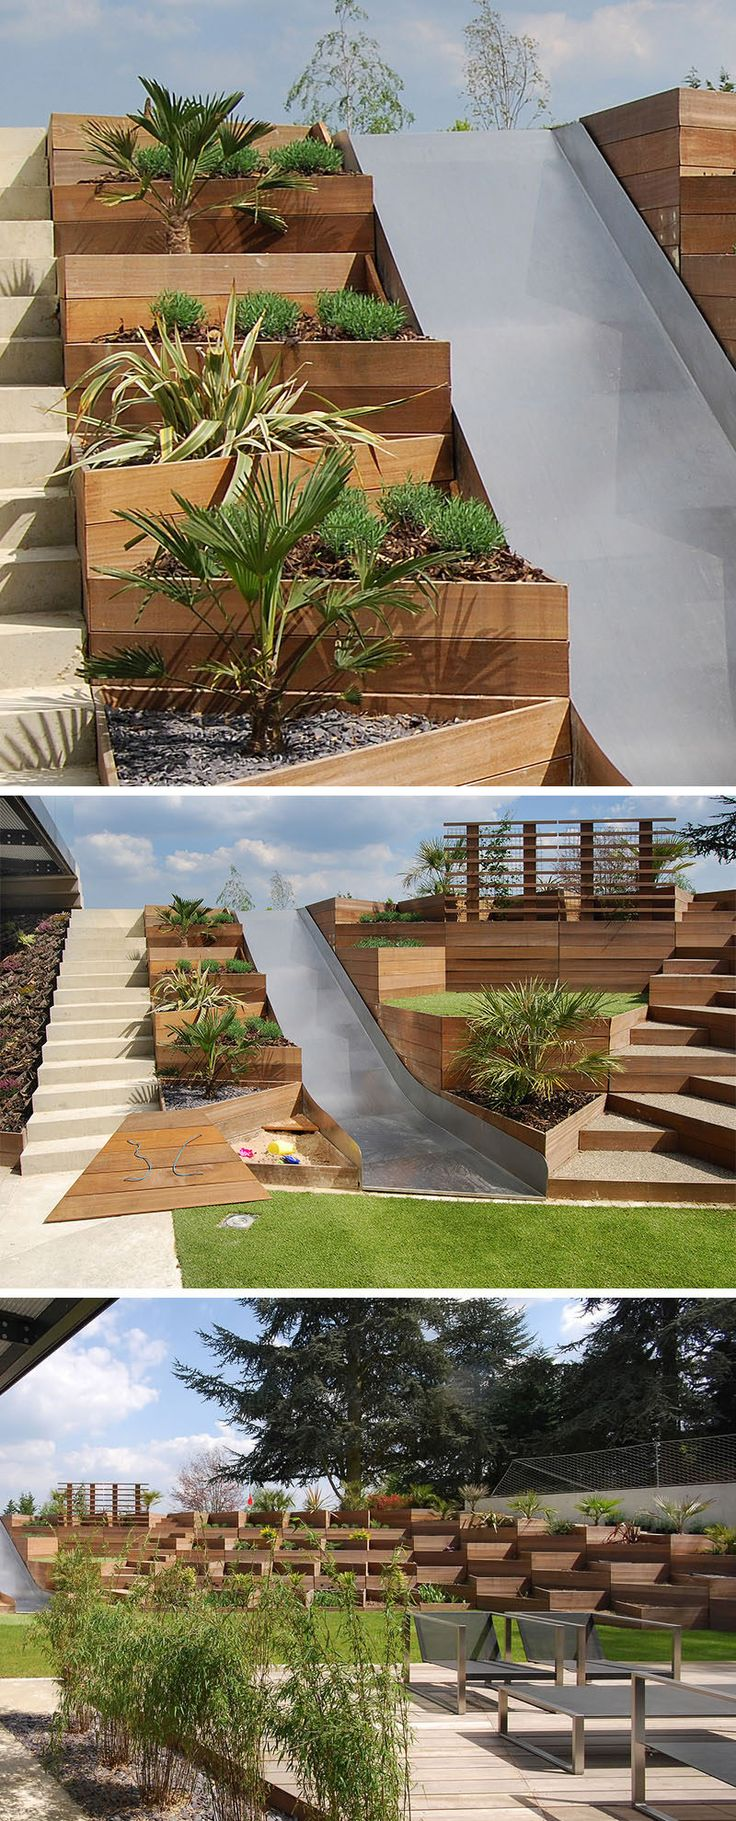 This backyard with a slide, makes use of triangular wooden planters to deal with the slope of the yard.